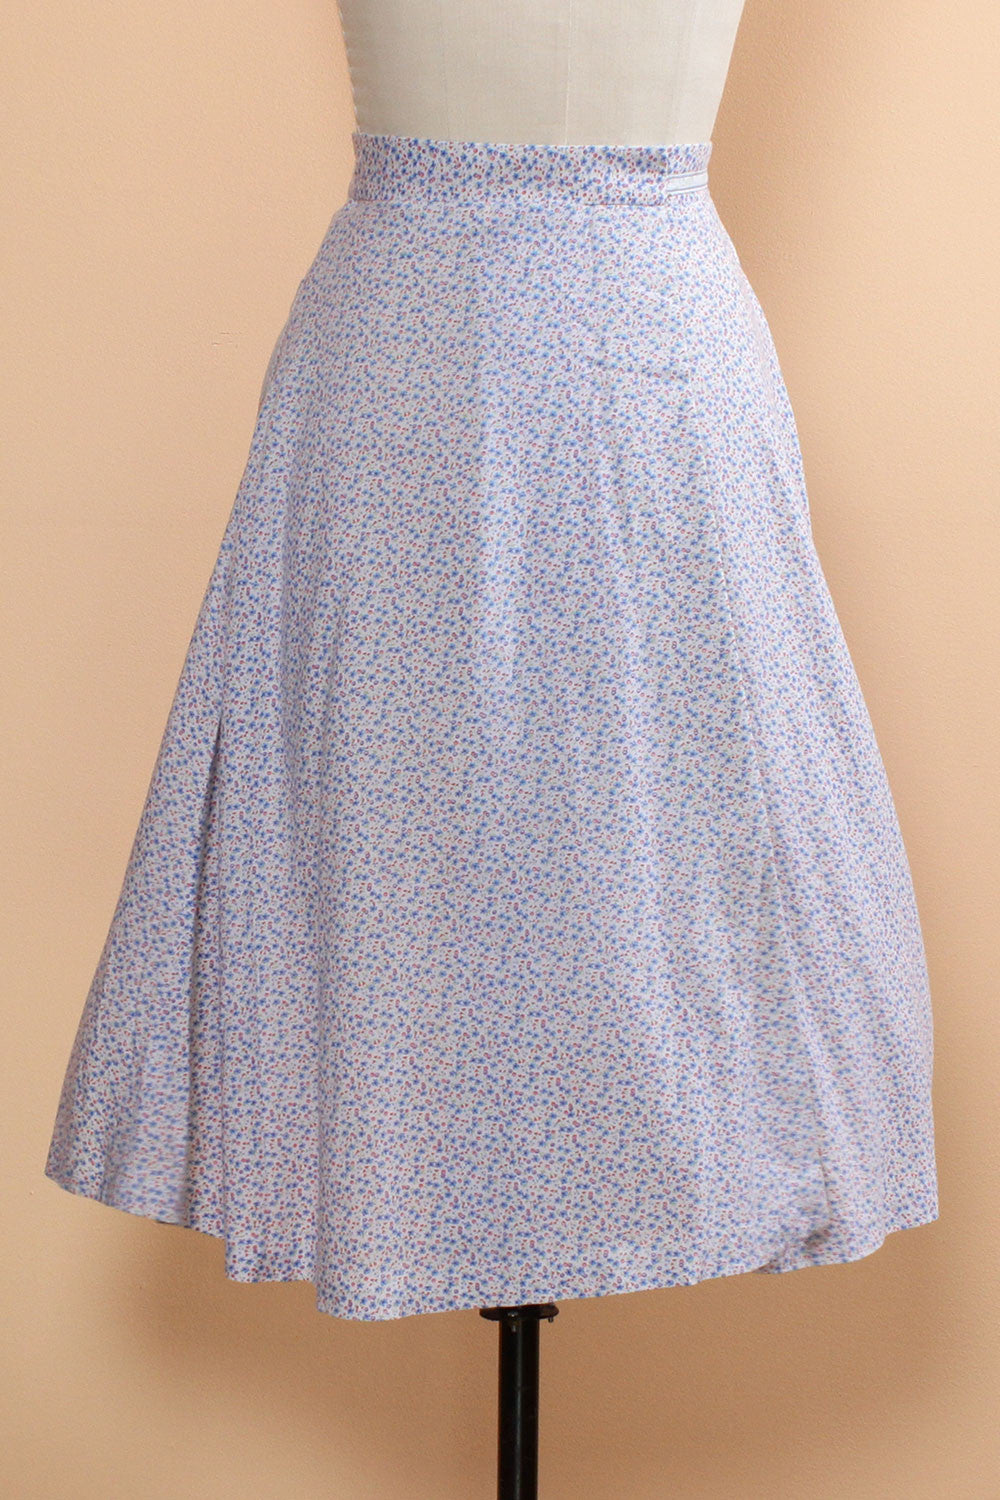 Calico Wrap Skirt XS/S